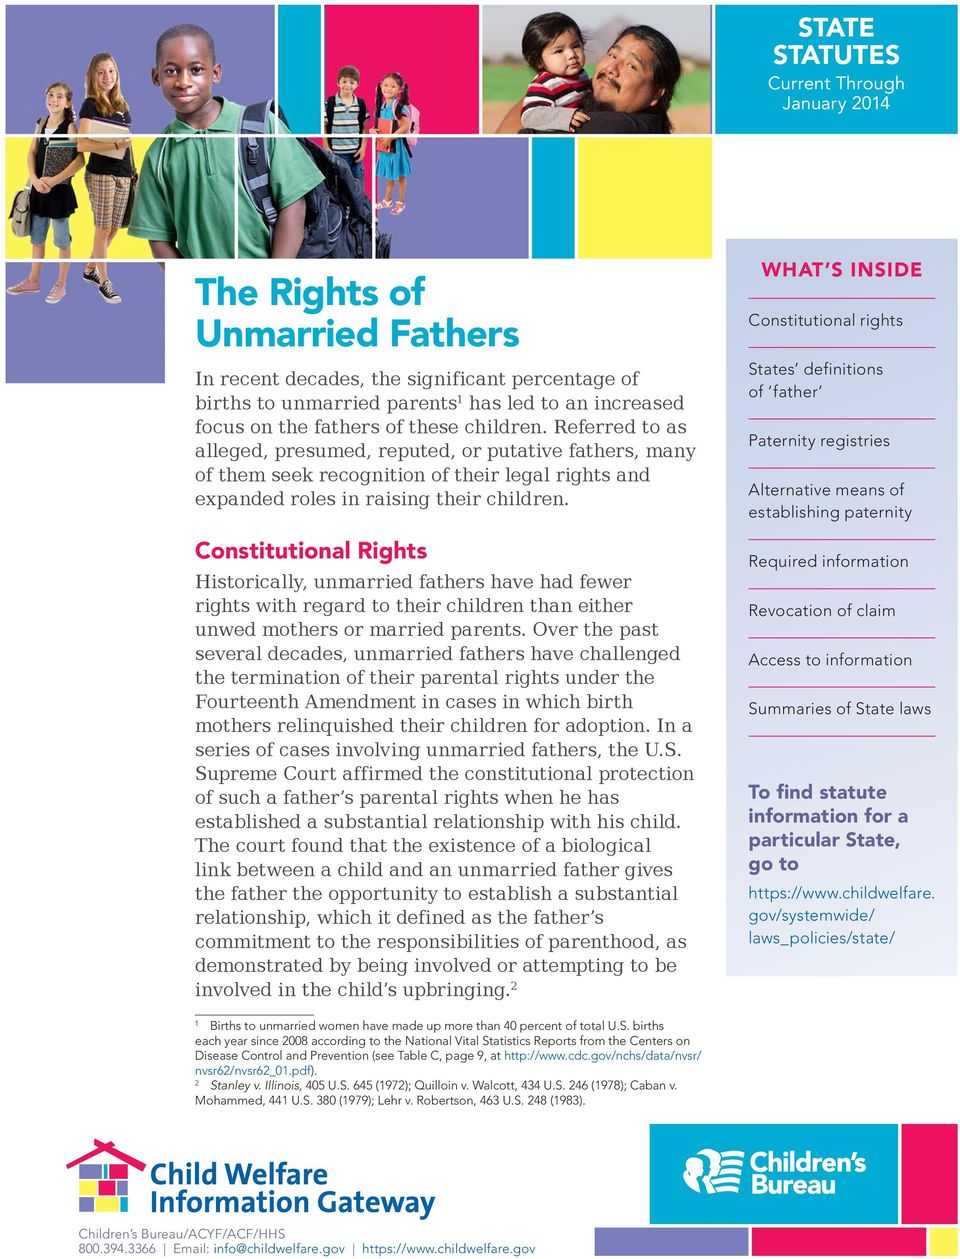 Constitutional Rights Historically, unmarried fathers have had fewer rights with regard to their children than either unwed mothers or married parents.